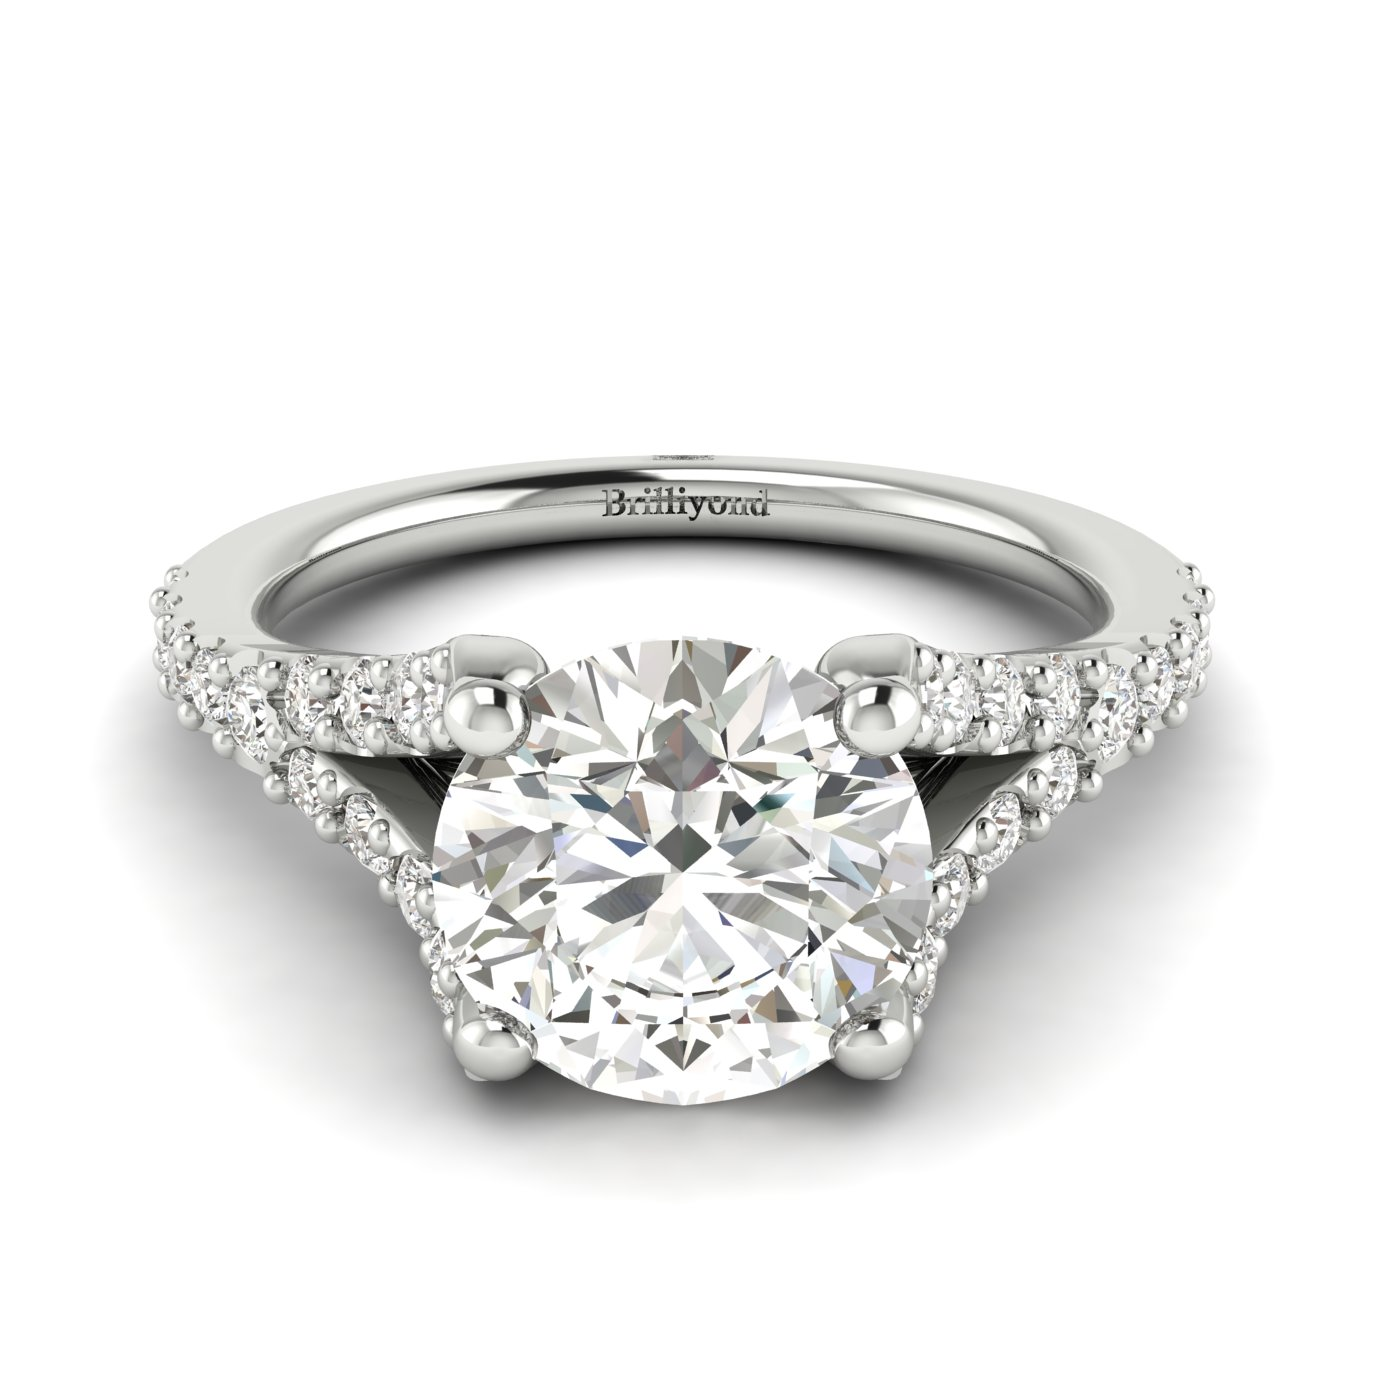 A four-pronged diamond engagement ring featuring 26 white cubic zirconia accent stones in pavé split shank setting.